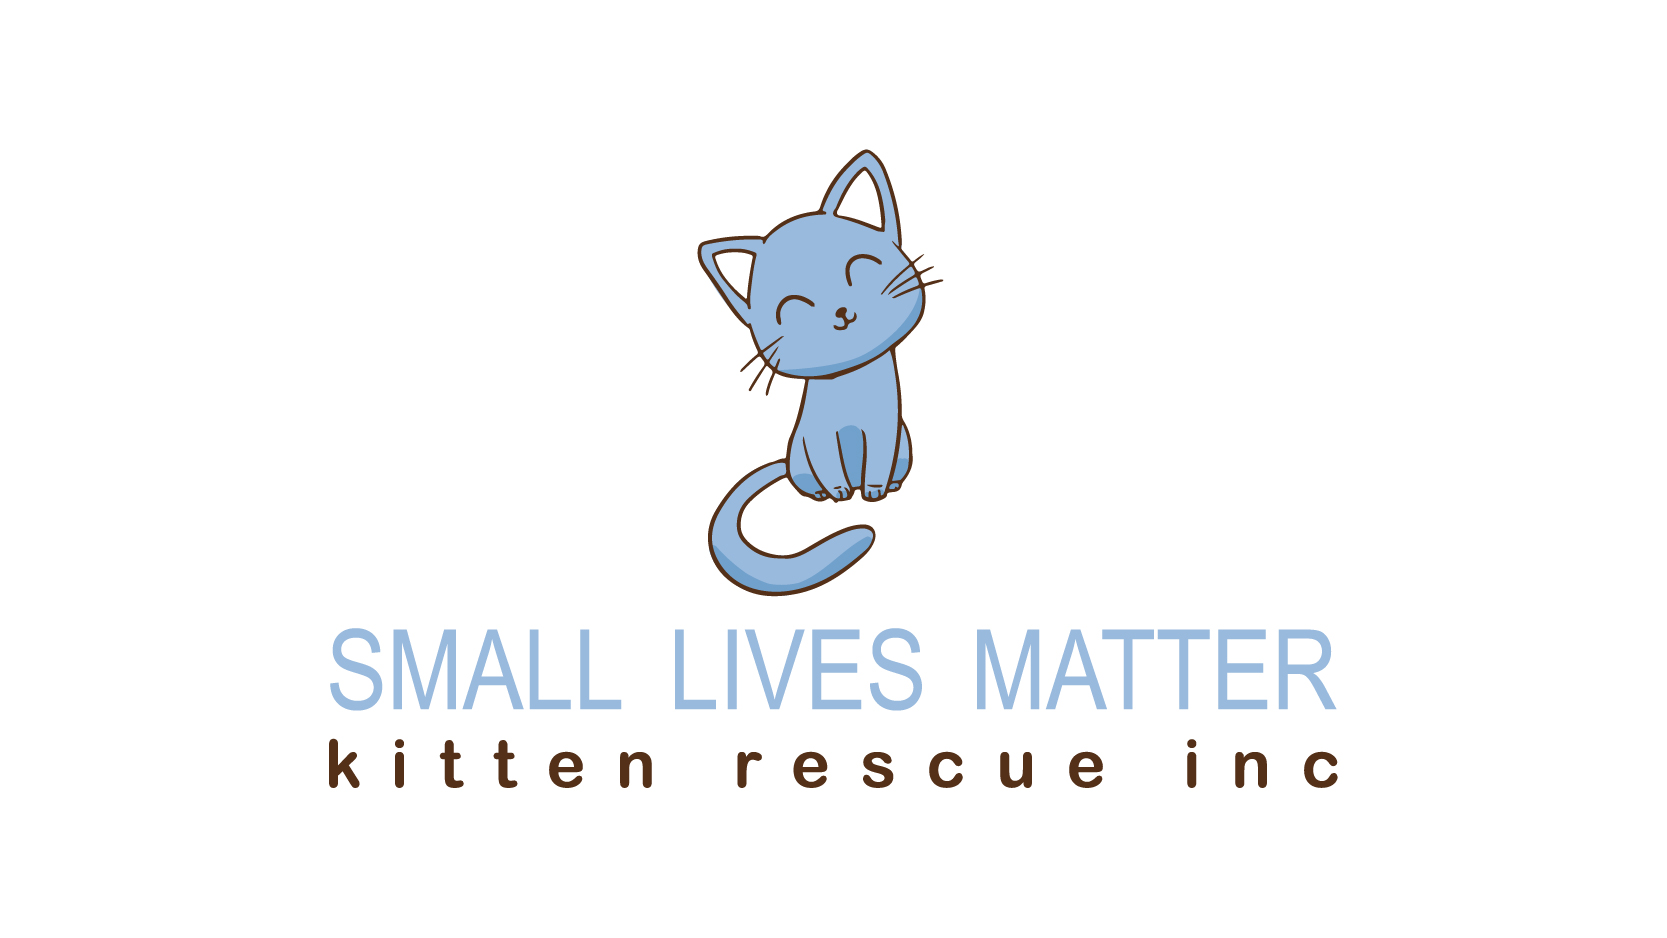 Small Lives Matter Kitten Rescue